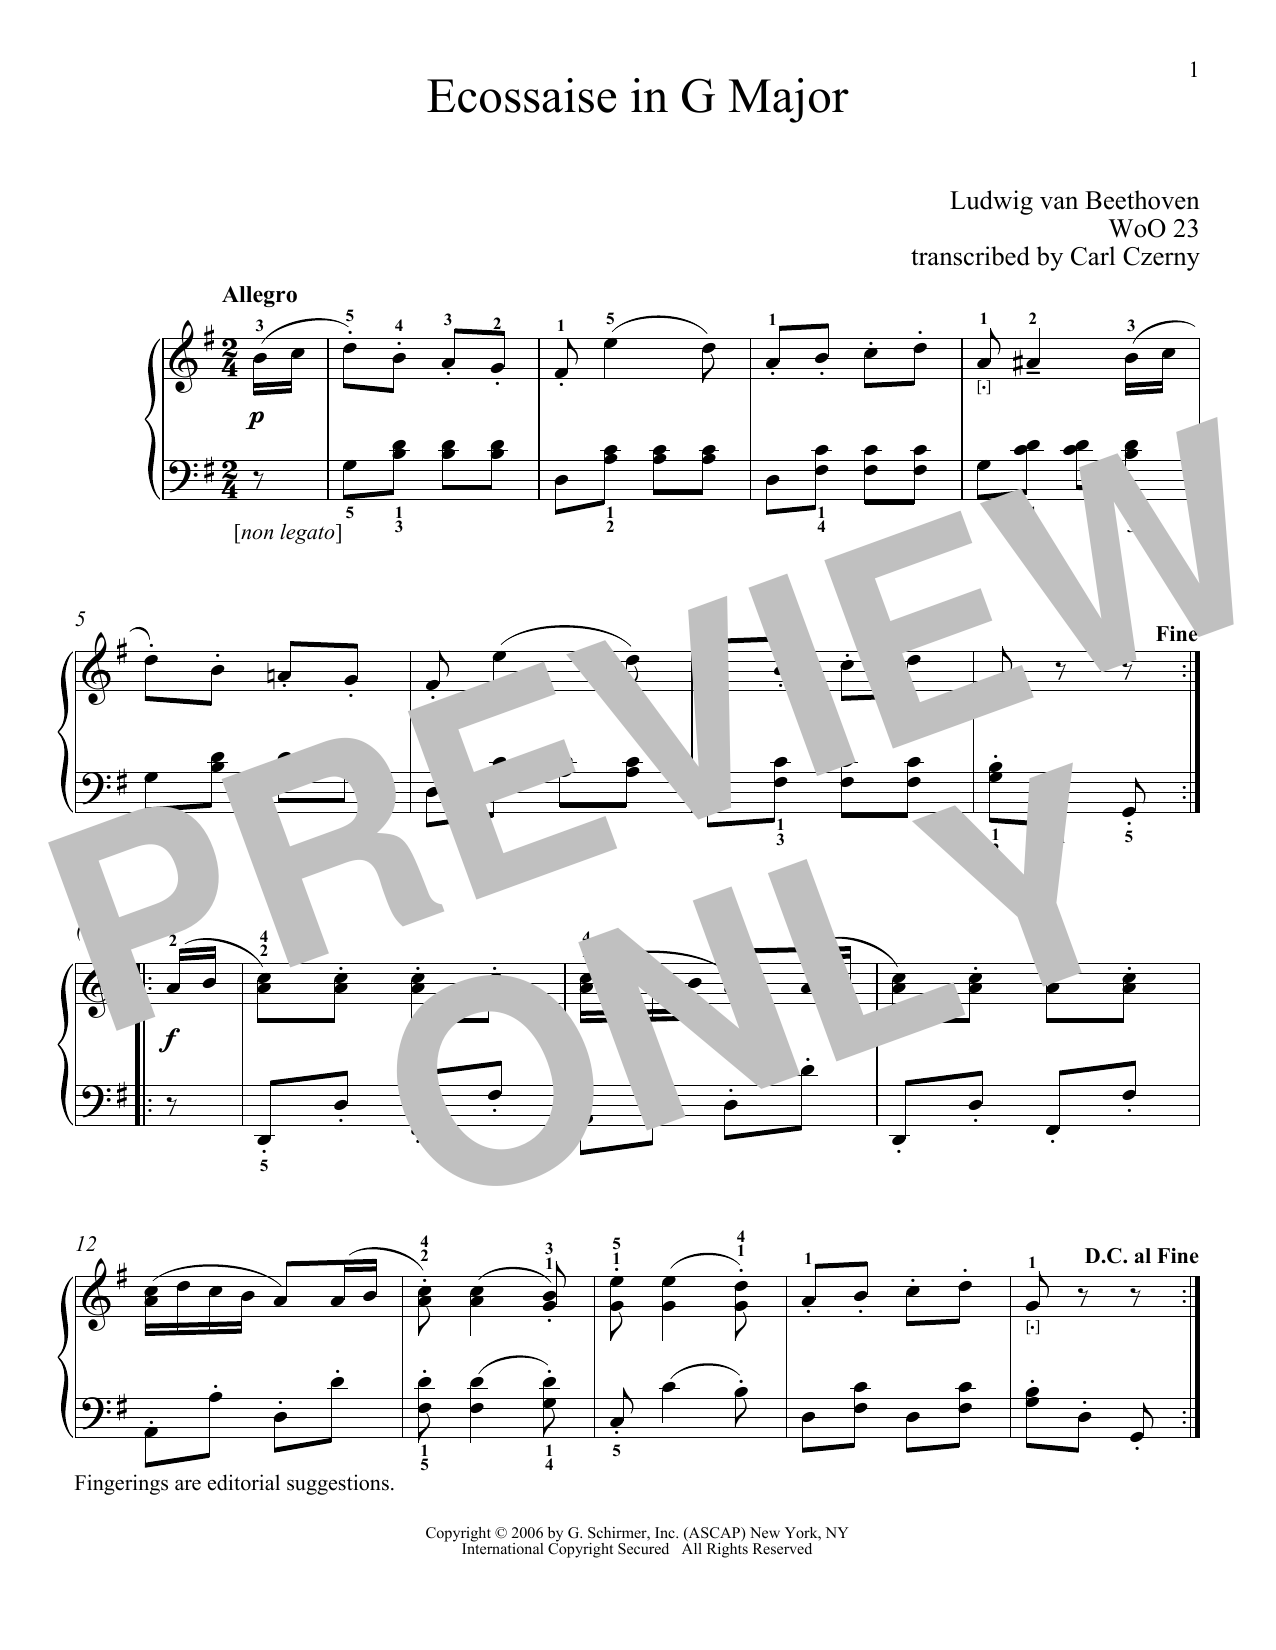 Download Ludwig van Beethoven 'Ecossaise In G Major, WoO 23' Digital Sheet Music Notes & Chords and start playing in minutes